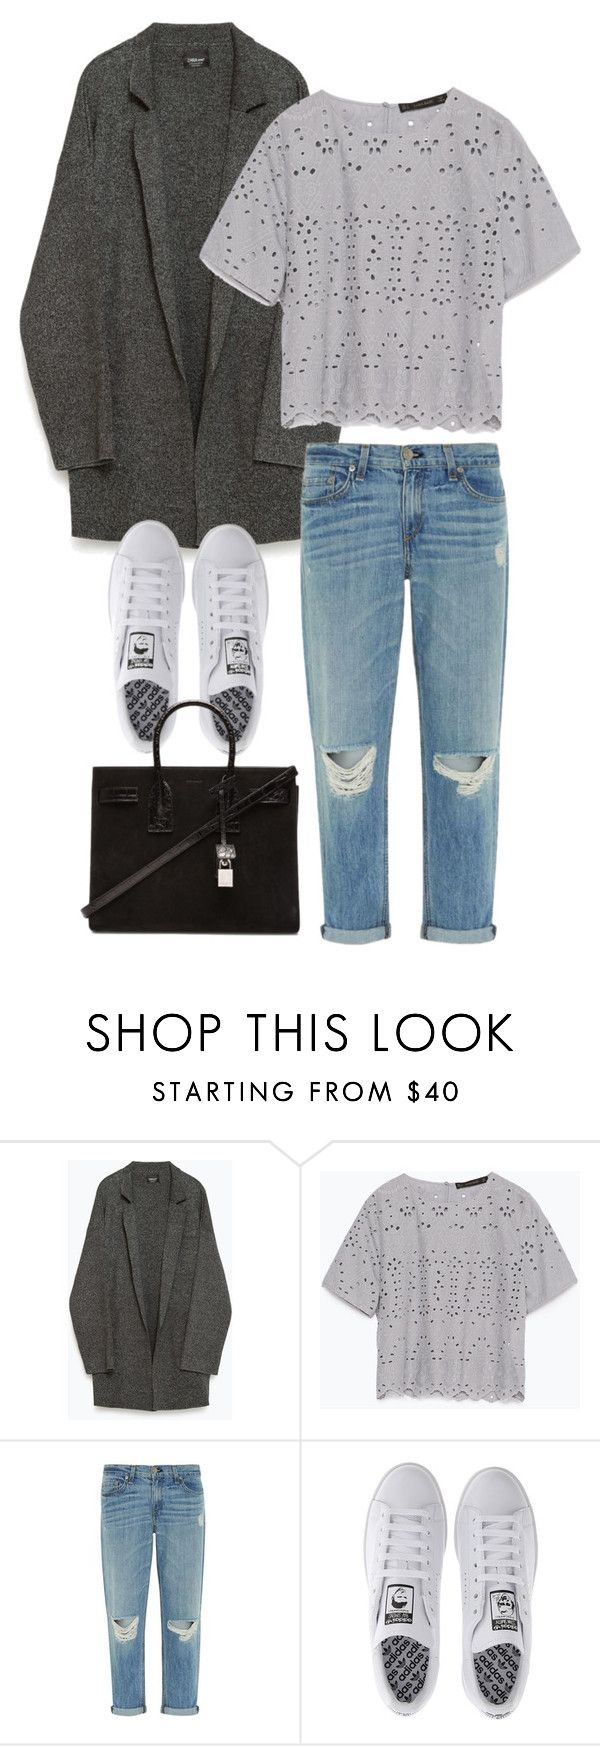 """Untitled #3208"" by bubbles-wardrobe ❤ liked on Polyvore featuring Zara, rag & bone, adidas and Yves Saint Laurent"